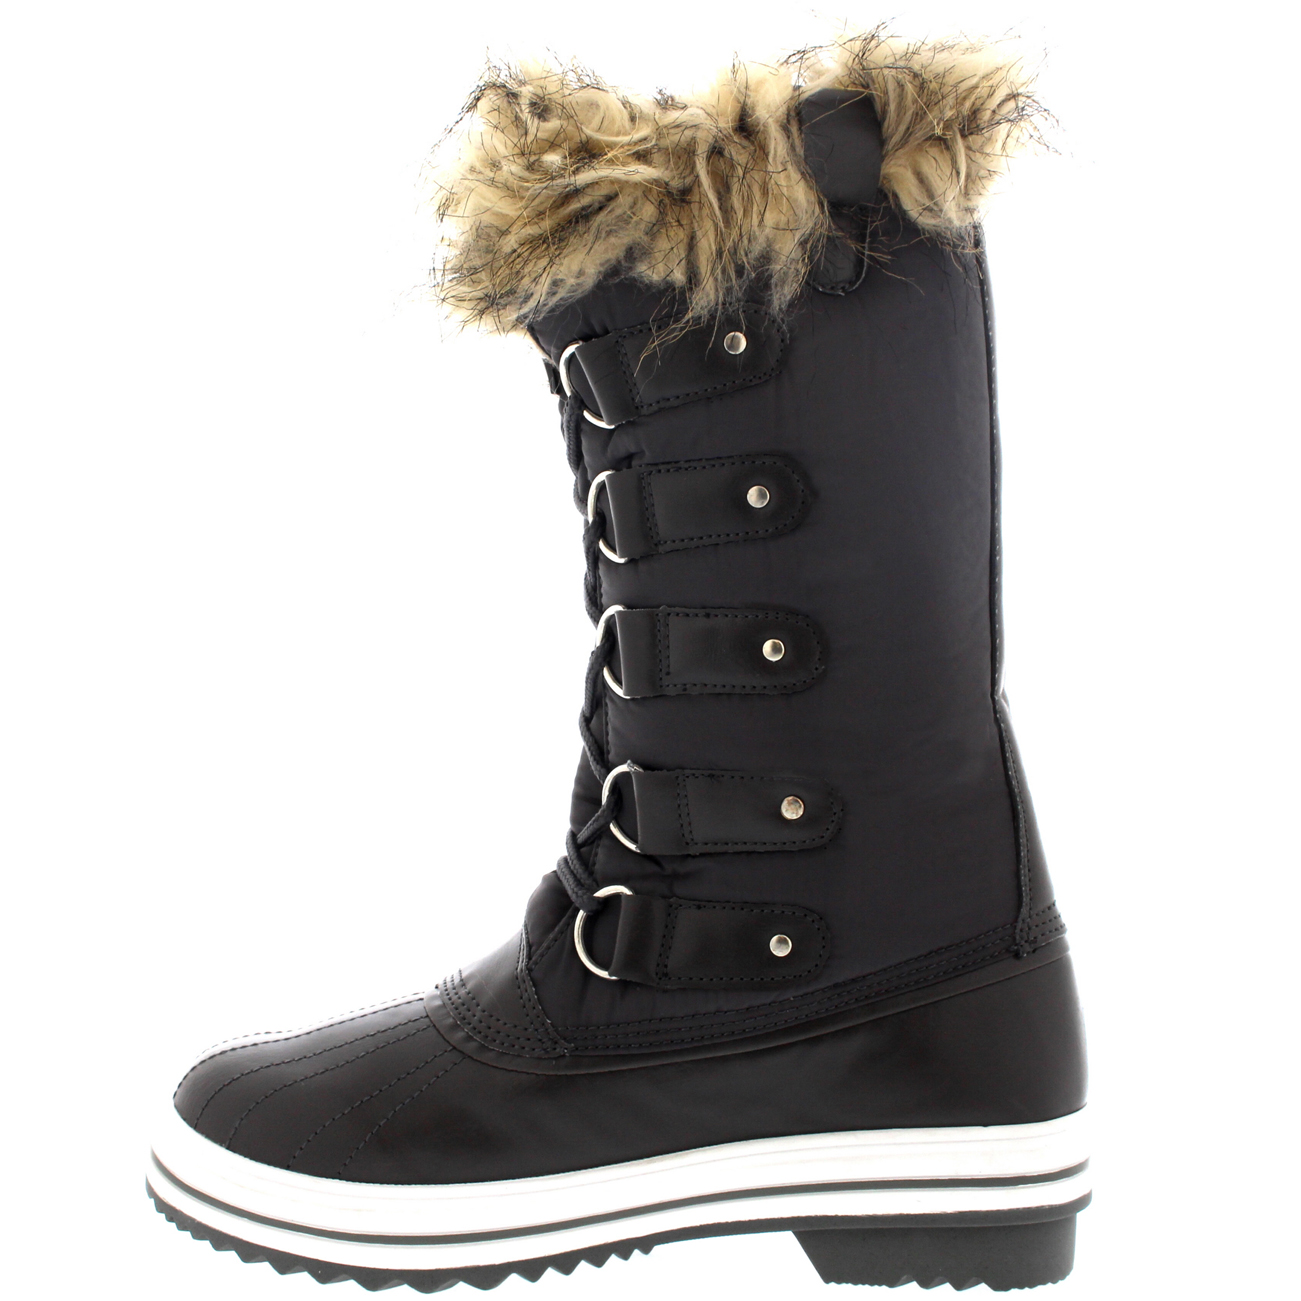 Womens Fur Cuff Lace Up Rubber Sole Tall Winter Waterproof Snow Rain Shoe Boots